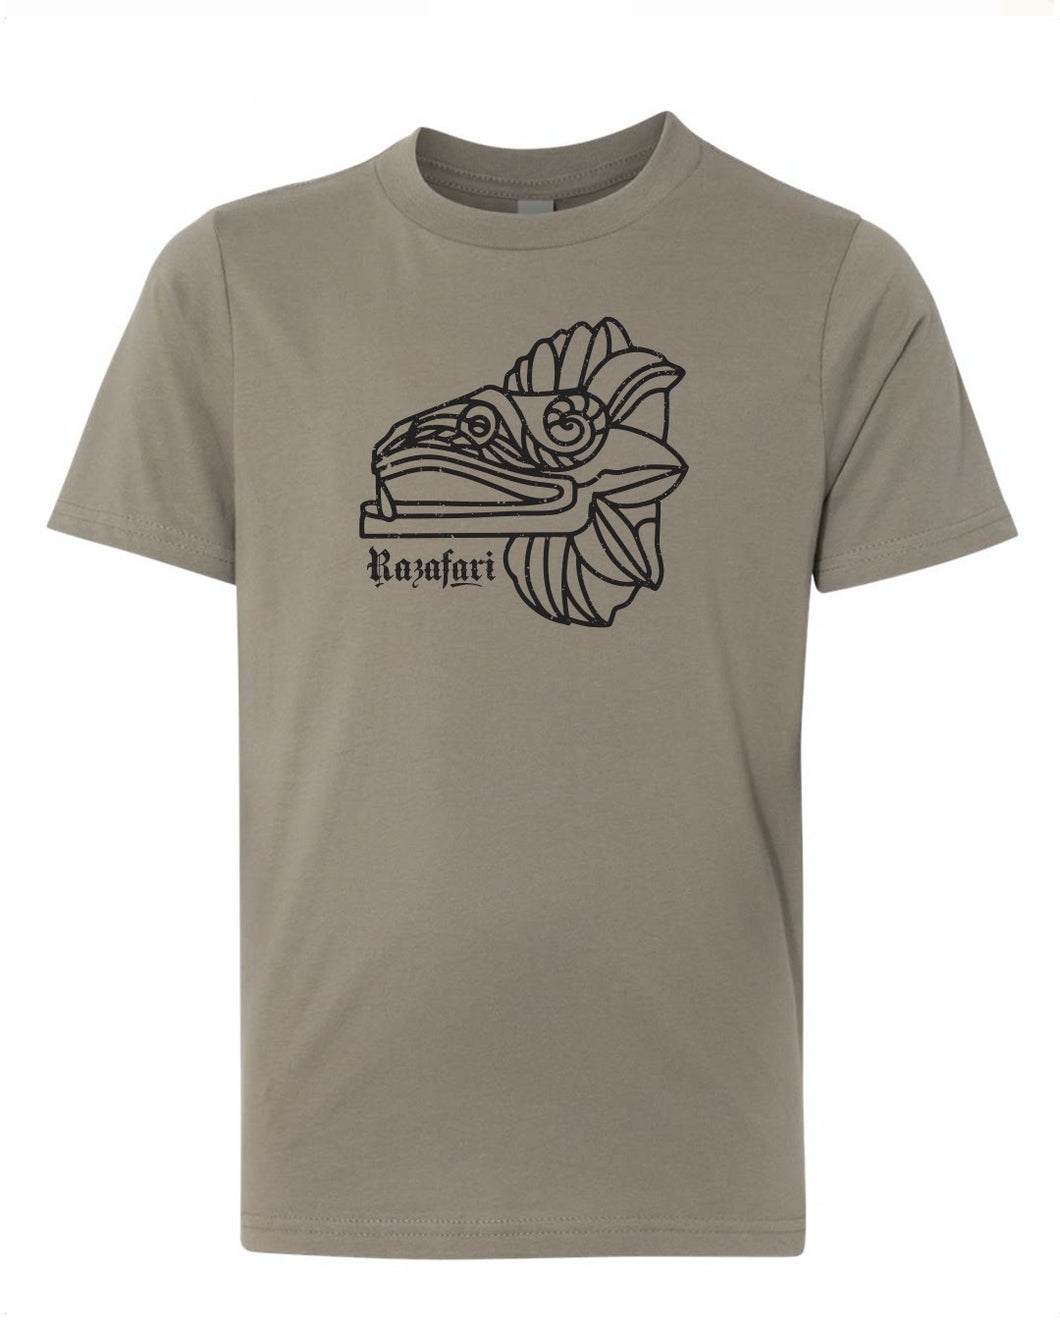 (Youth) Feathered Serpent Unisex T-shirt - Warm Grey